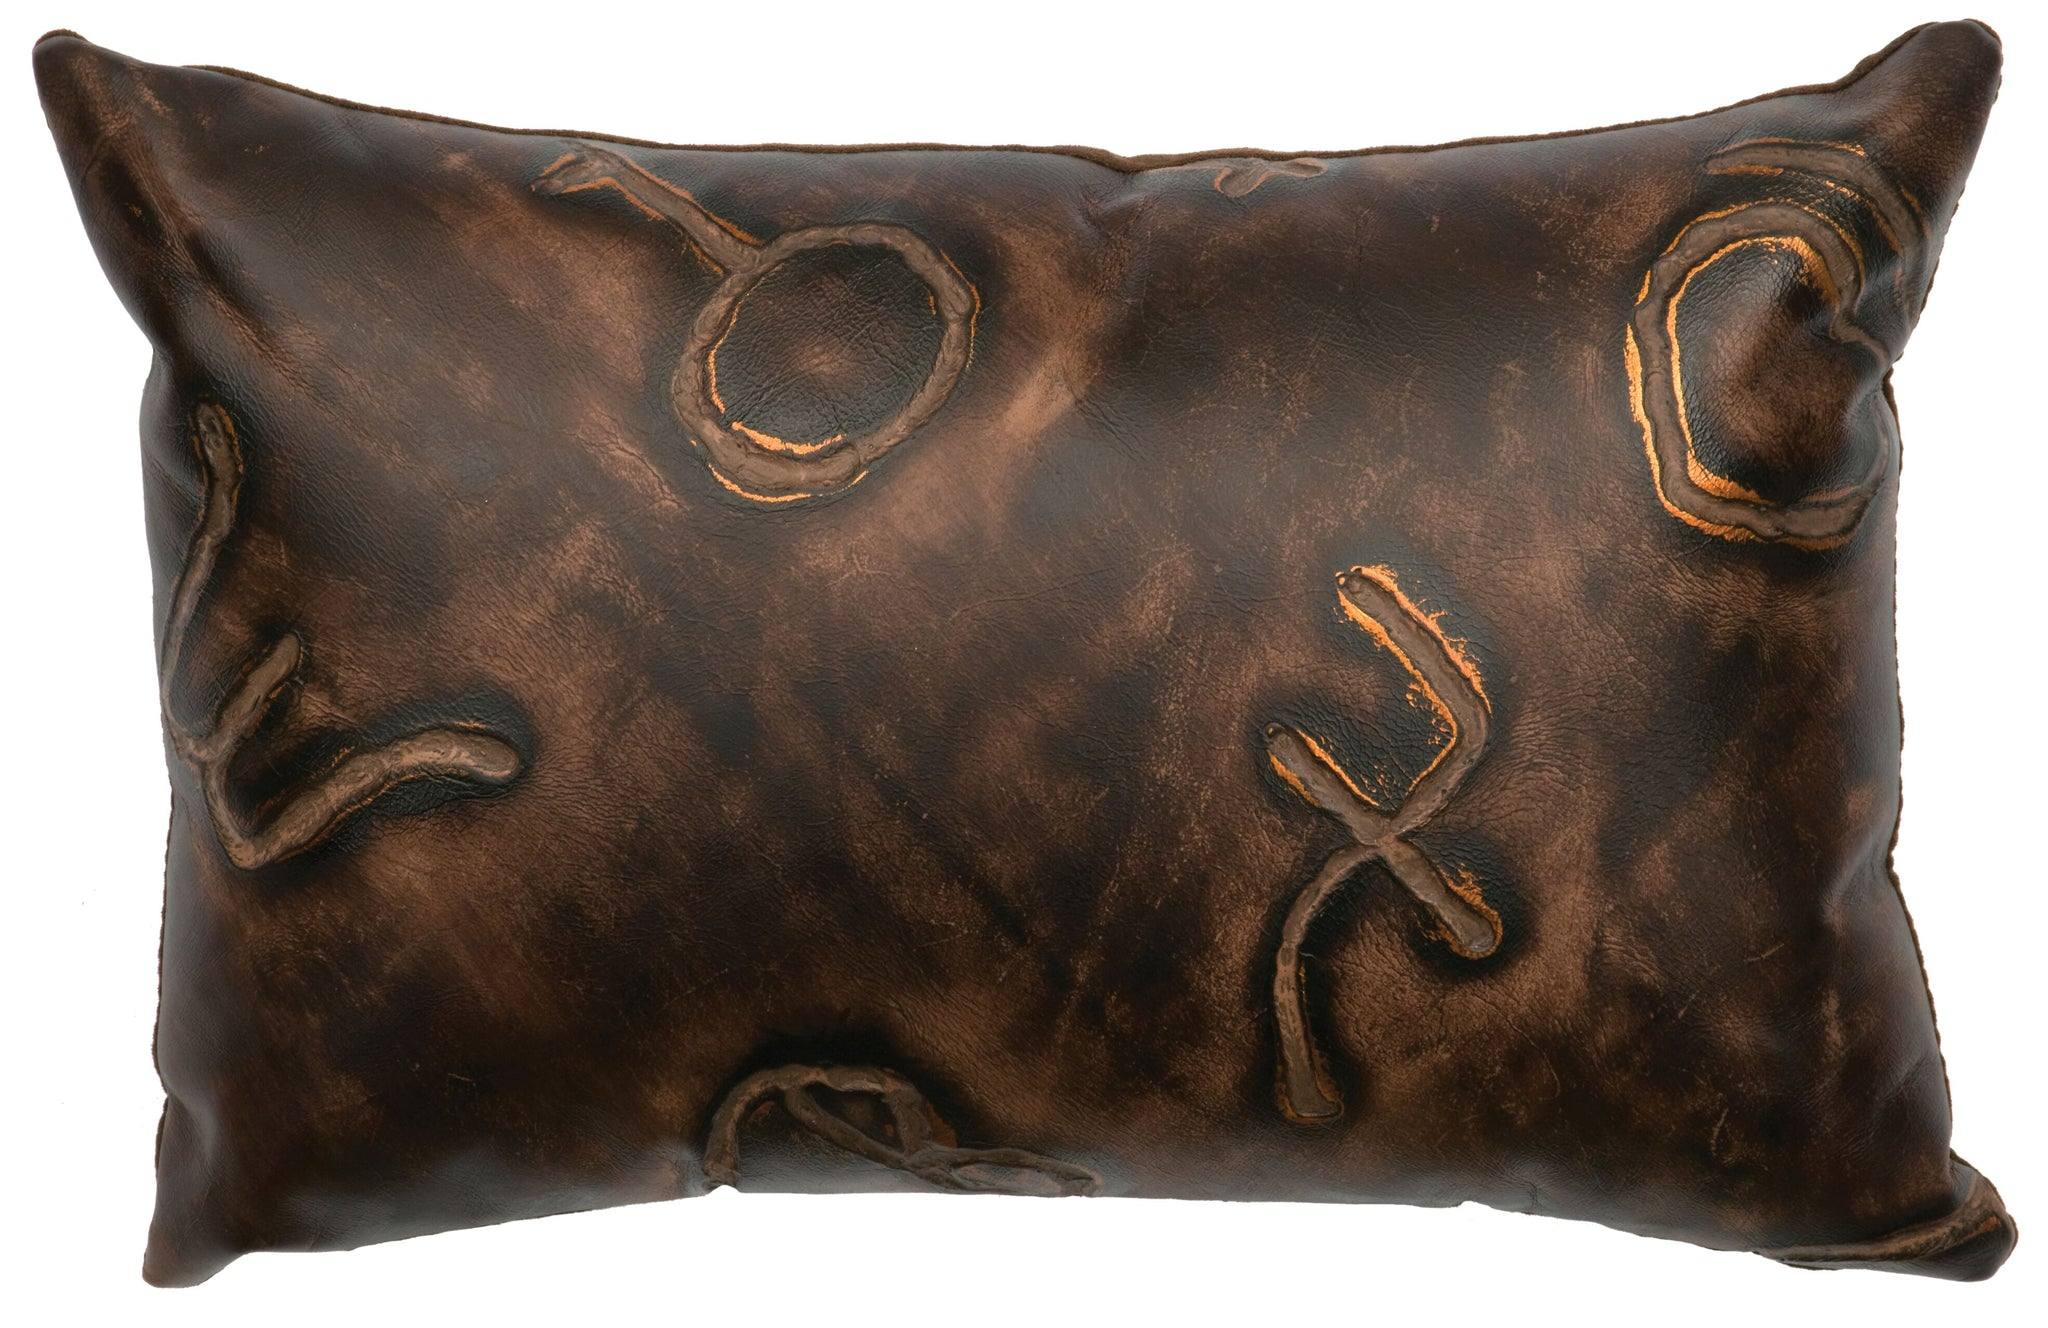 Leather Pillow Wooded River WD80201 - unique linens online